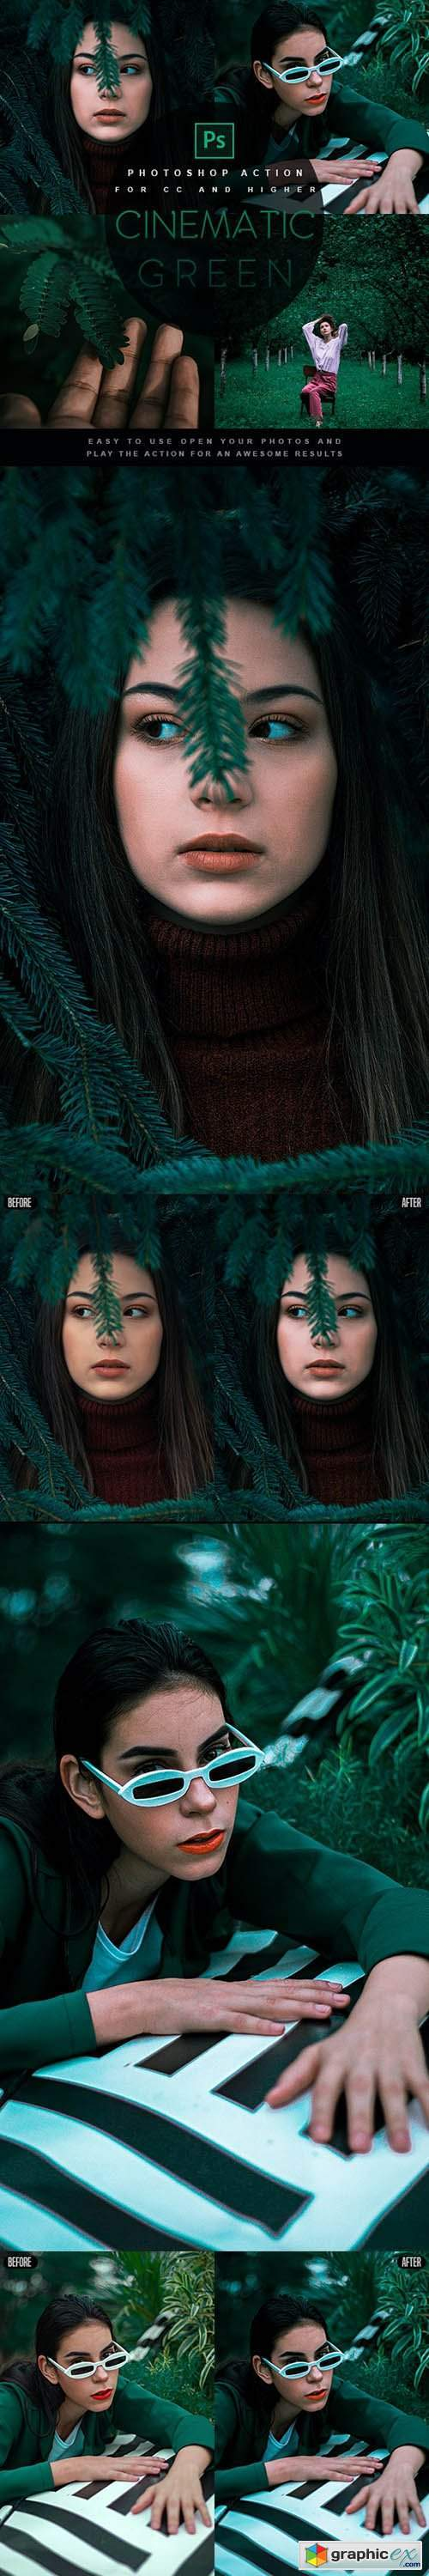 Cinematic Green - Photoshop Action